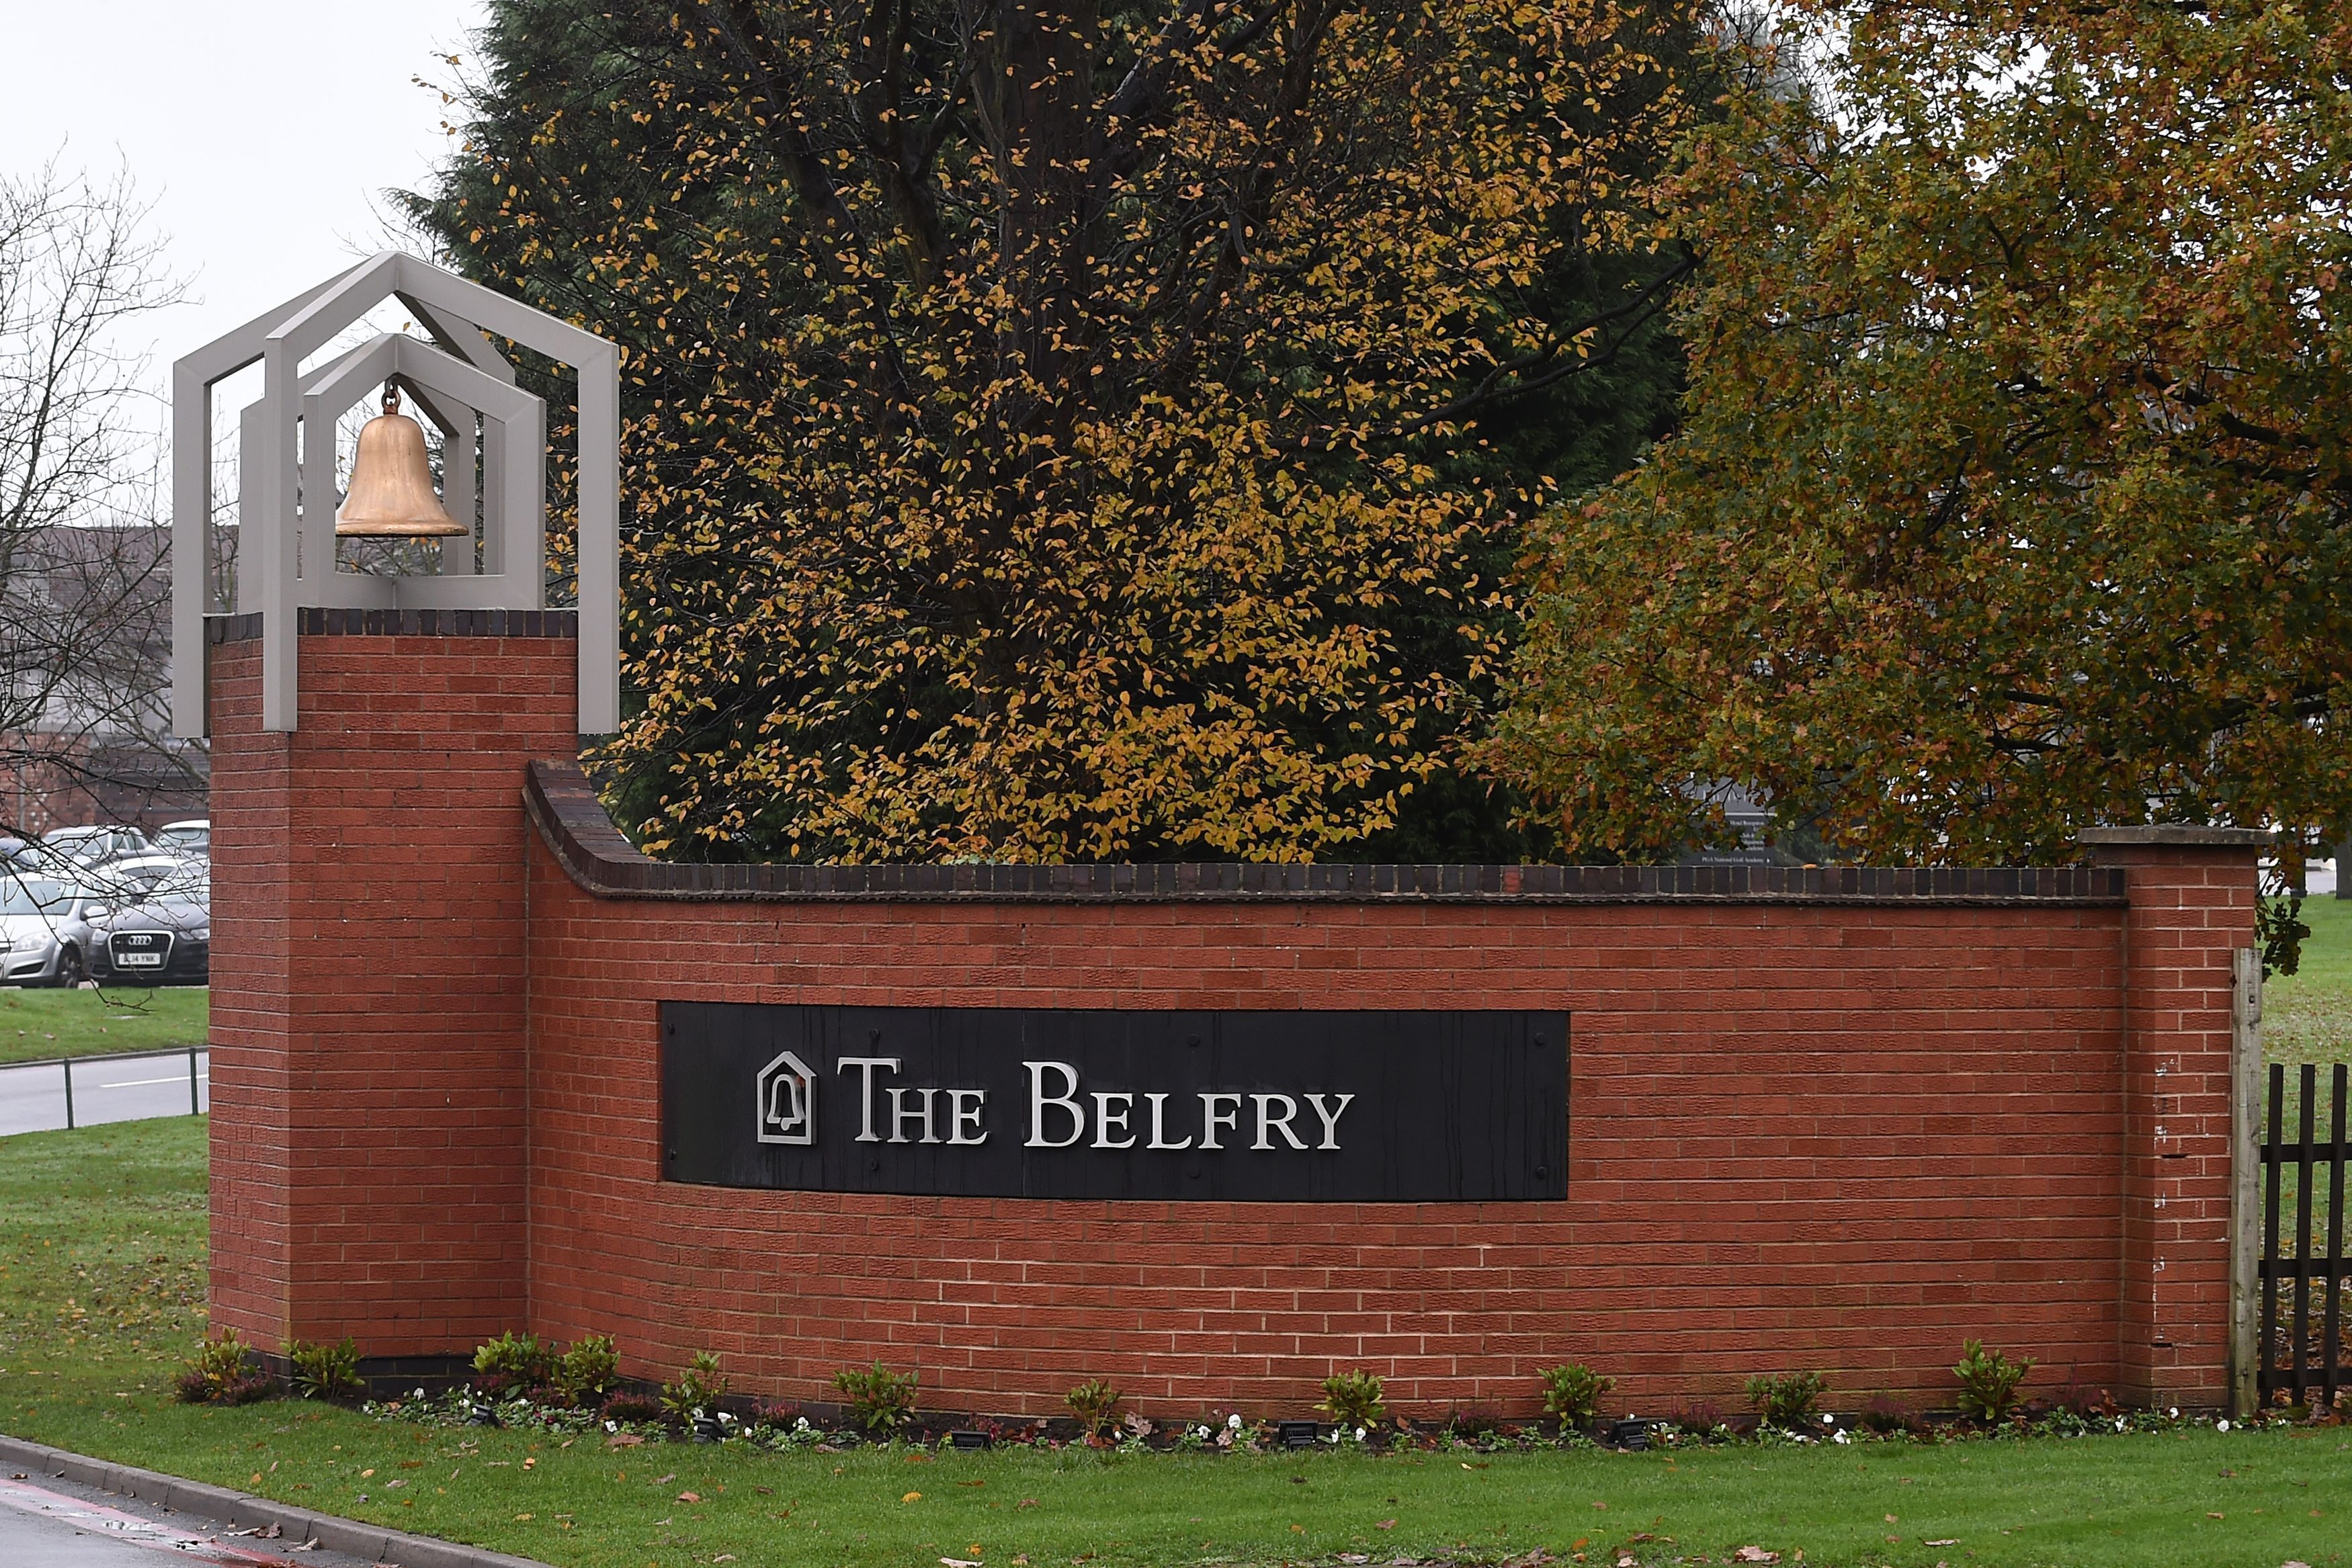 File photo dated 26/11/14 of of the entrance to The Belfry Resort in Sutton Coldfield, Birmingham where the Magical Journey Christmas attraction is based, as Laurence Llewelyn Bowen expressed his shock at the closure of the Christmas experience he designed after a major financial backer pulled out with nine opening days left. PRESS ASSOCIATION Photo. Issue date: Tuesday December 16, 2014. The celebrity interior designer told the Press Association he was